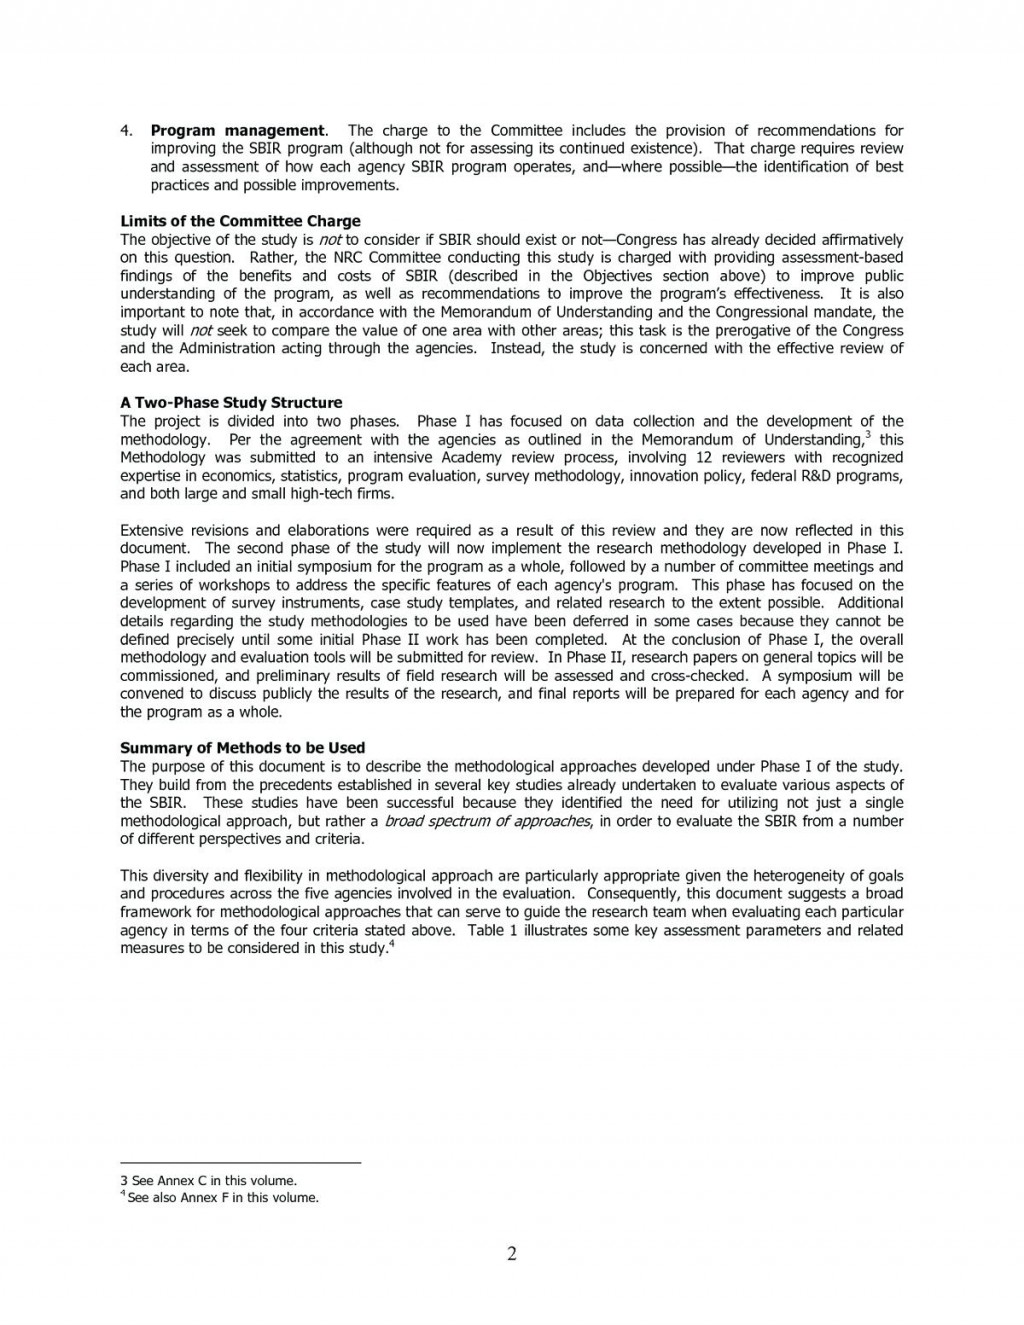 003 Project Management Executive Summary Template Format For Report Pics Large Plan Fantastic Of A Research Paper Example Large